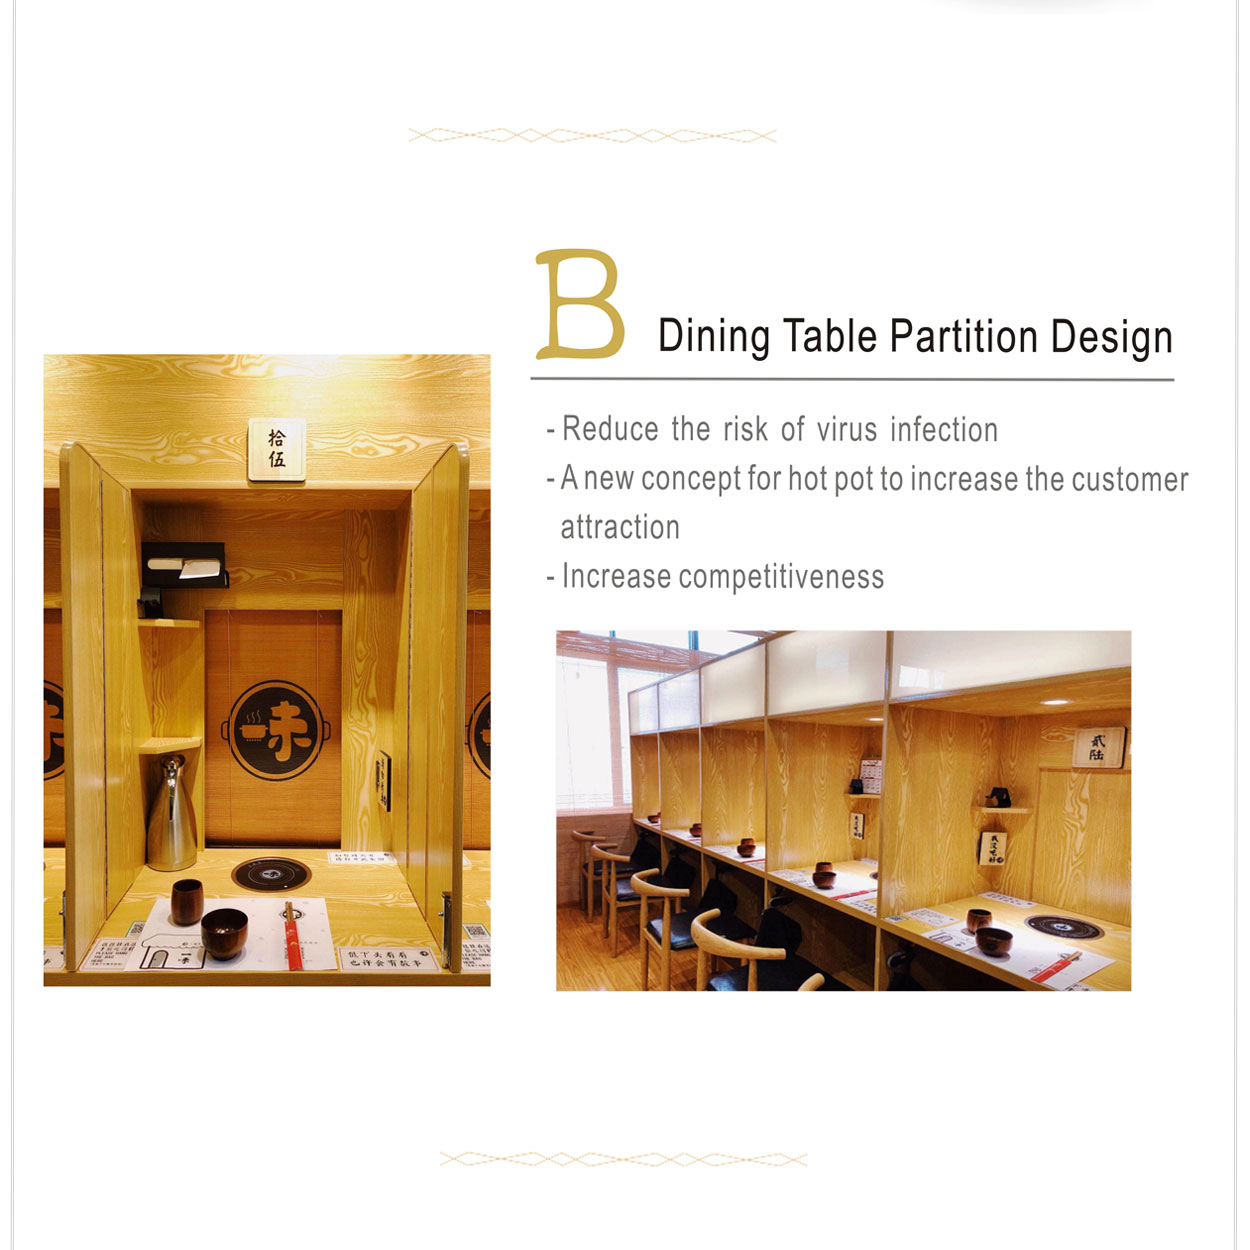 Dining table partition design - CENHOT